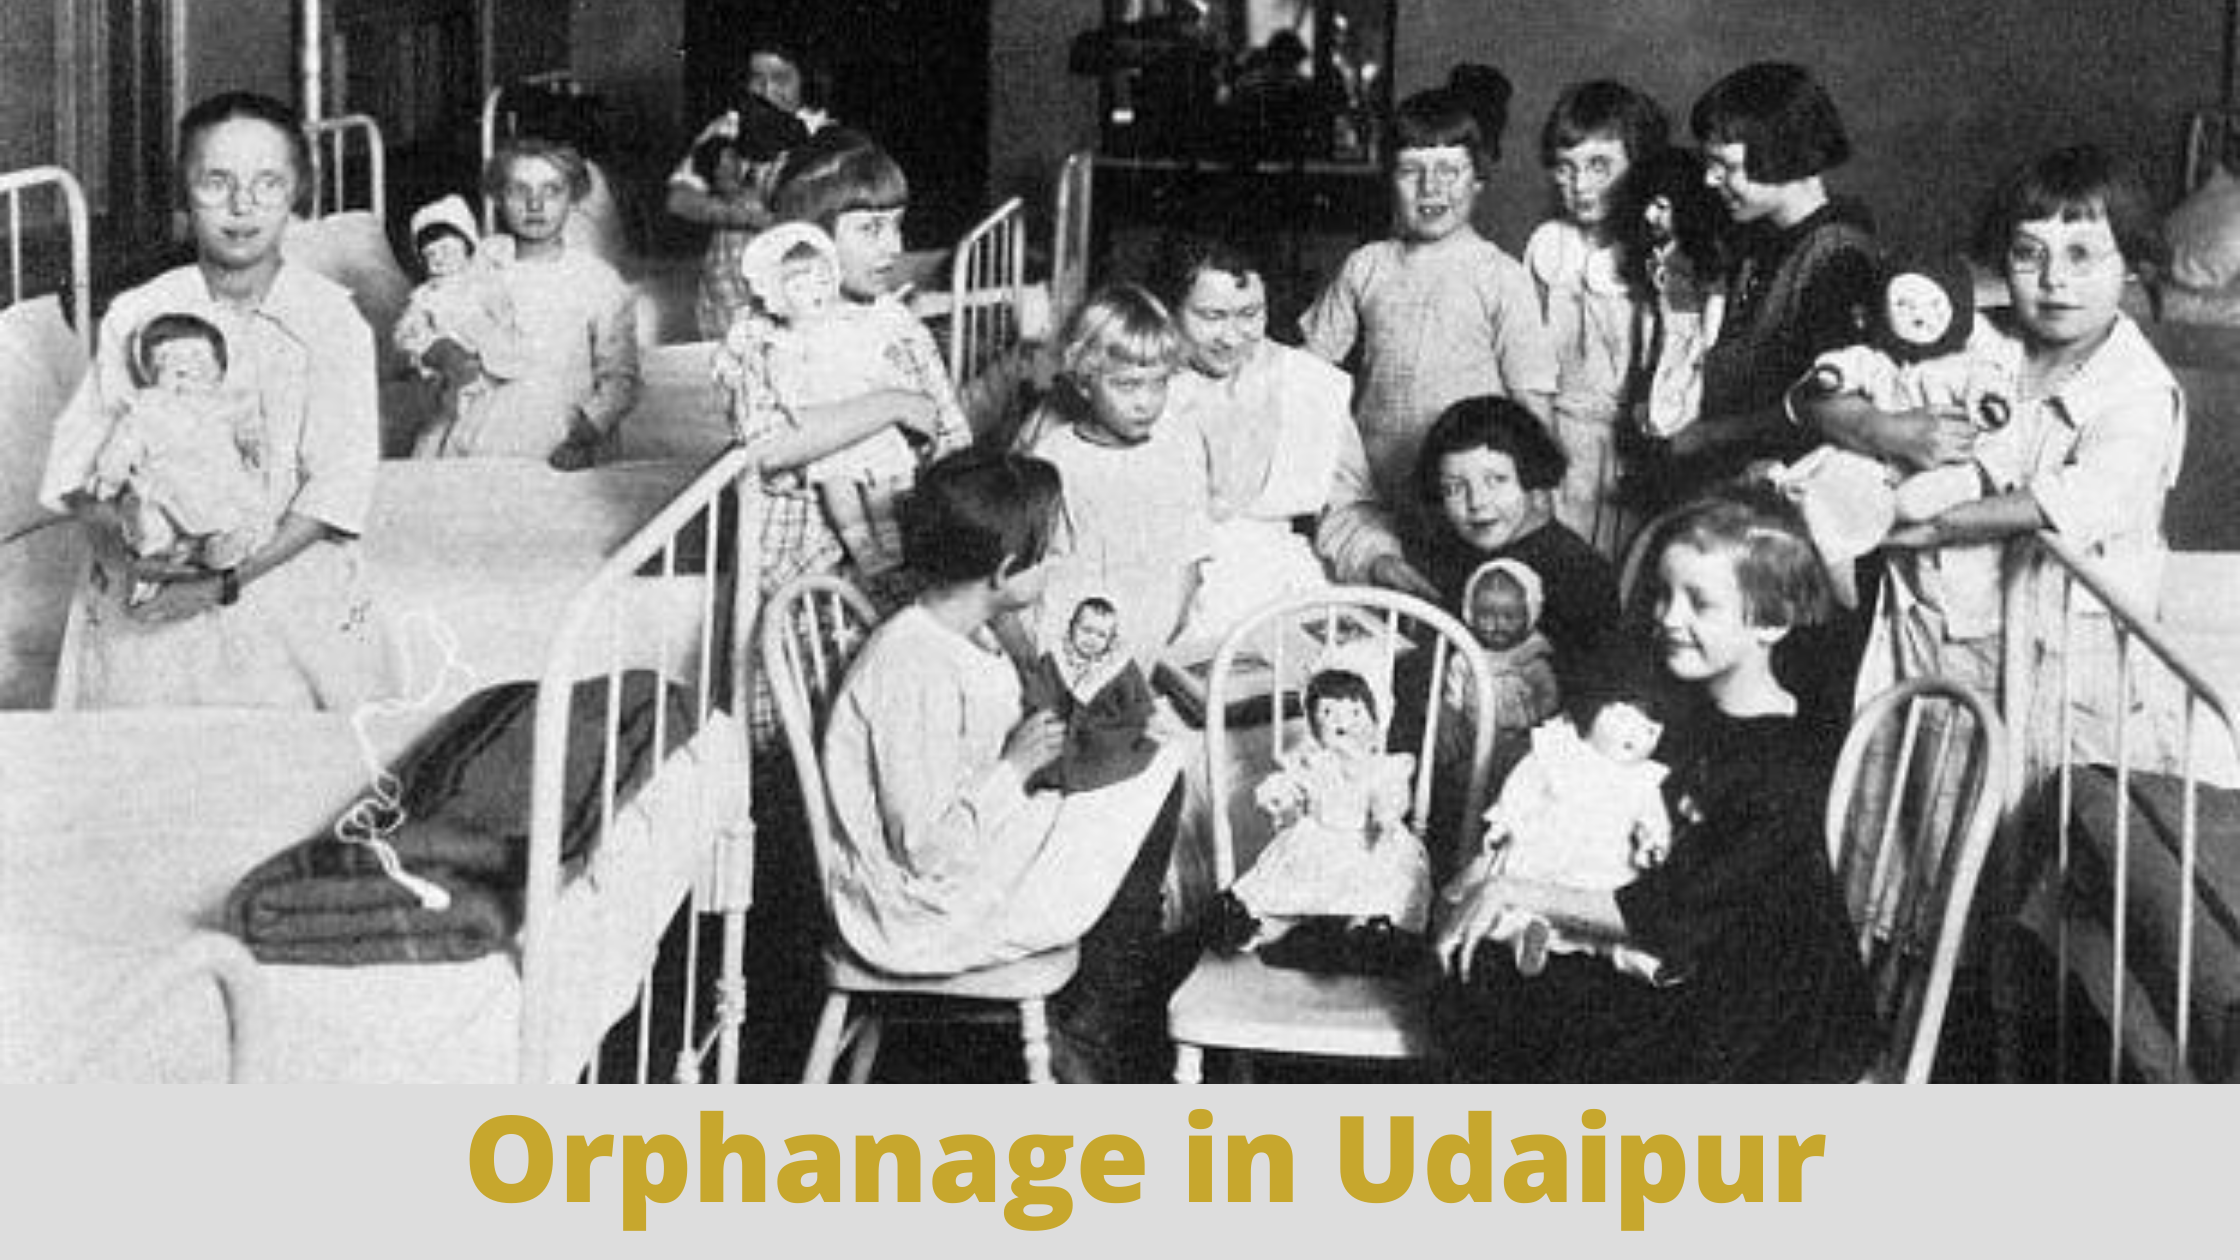 Orphanage in Udaipur